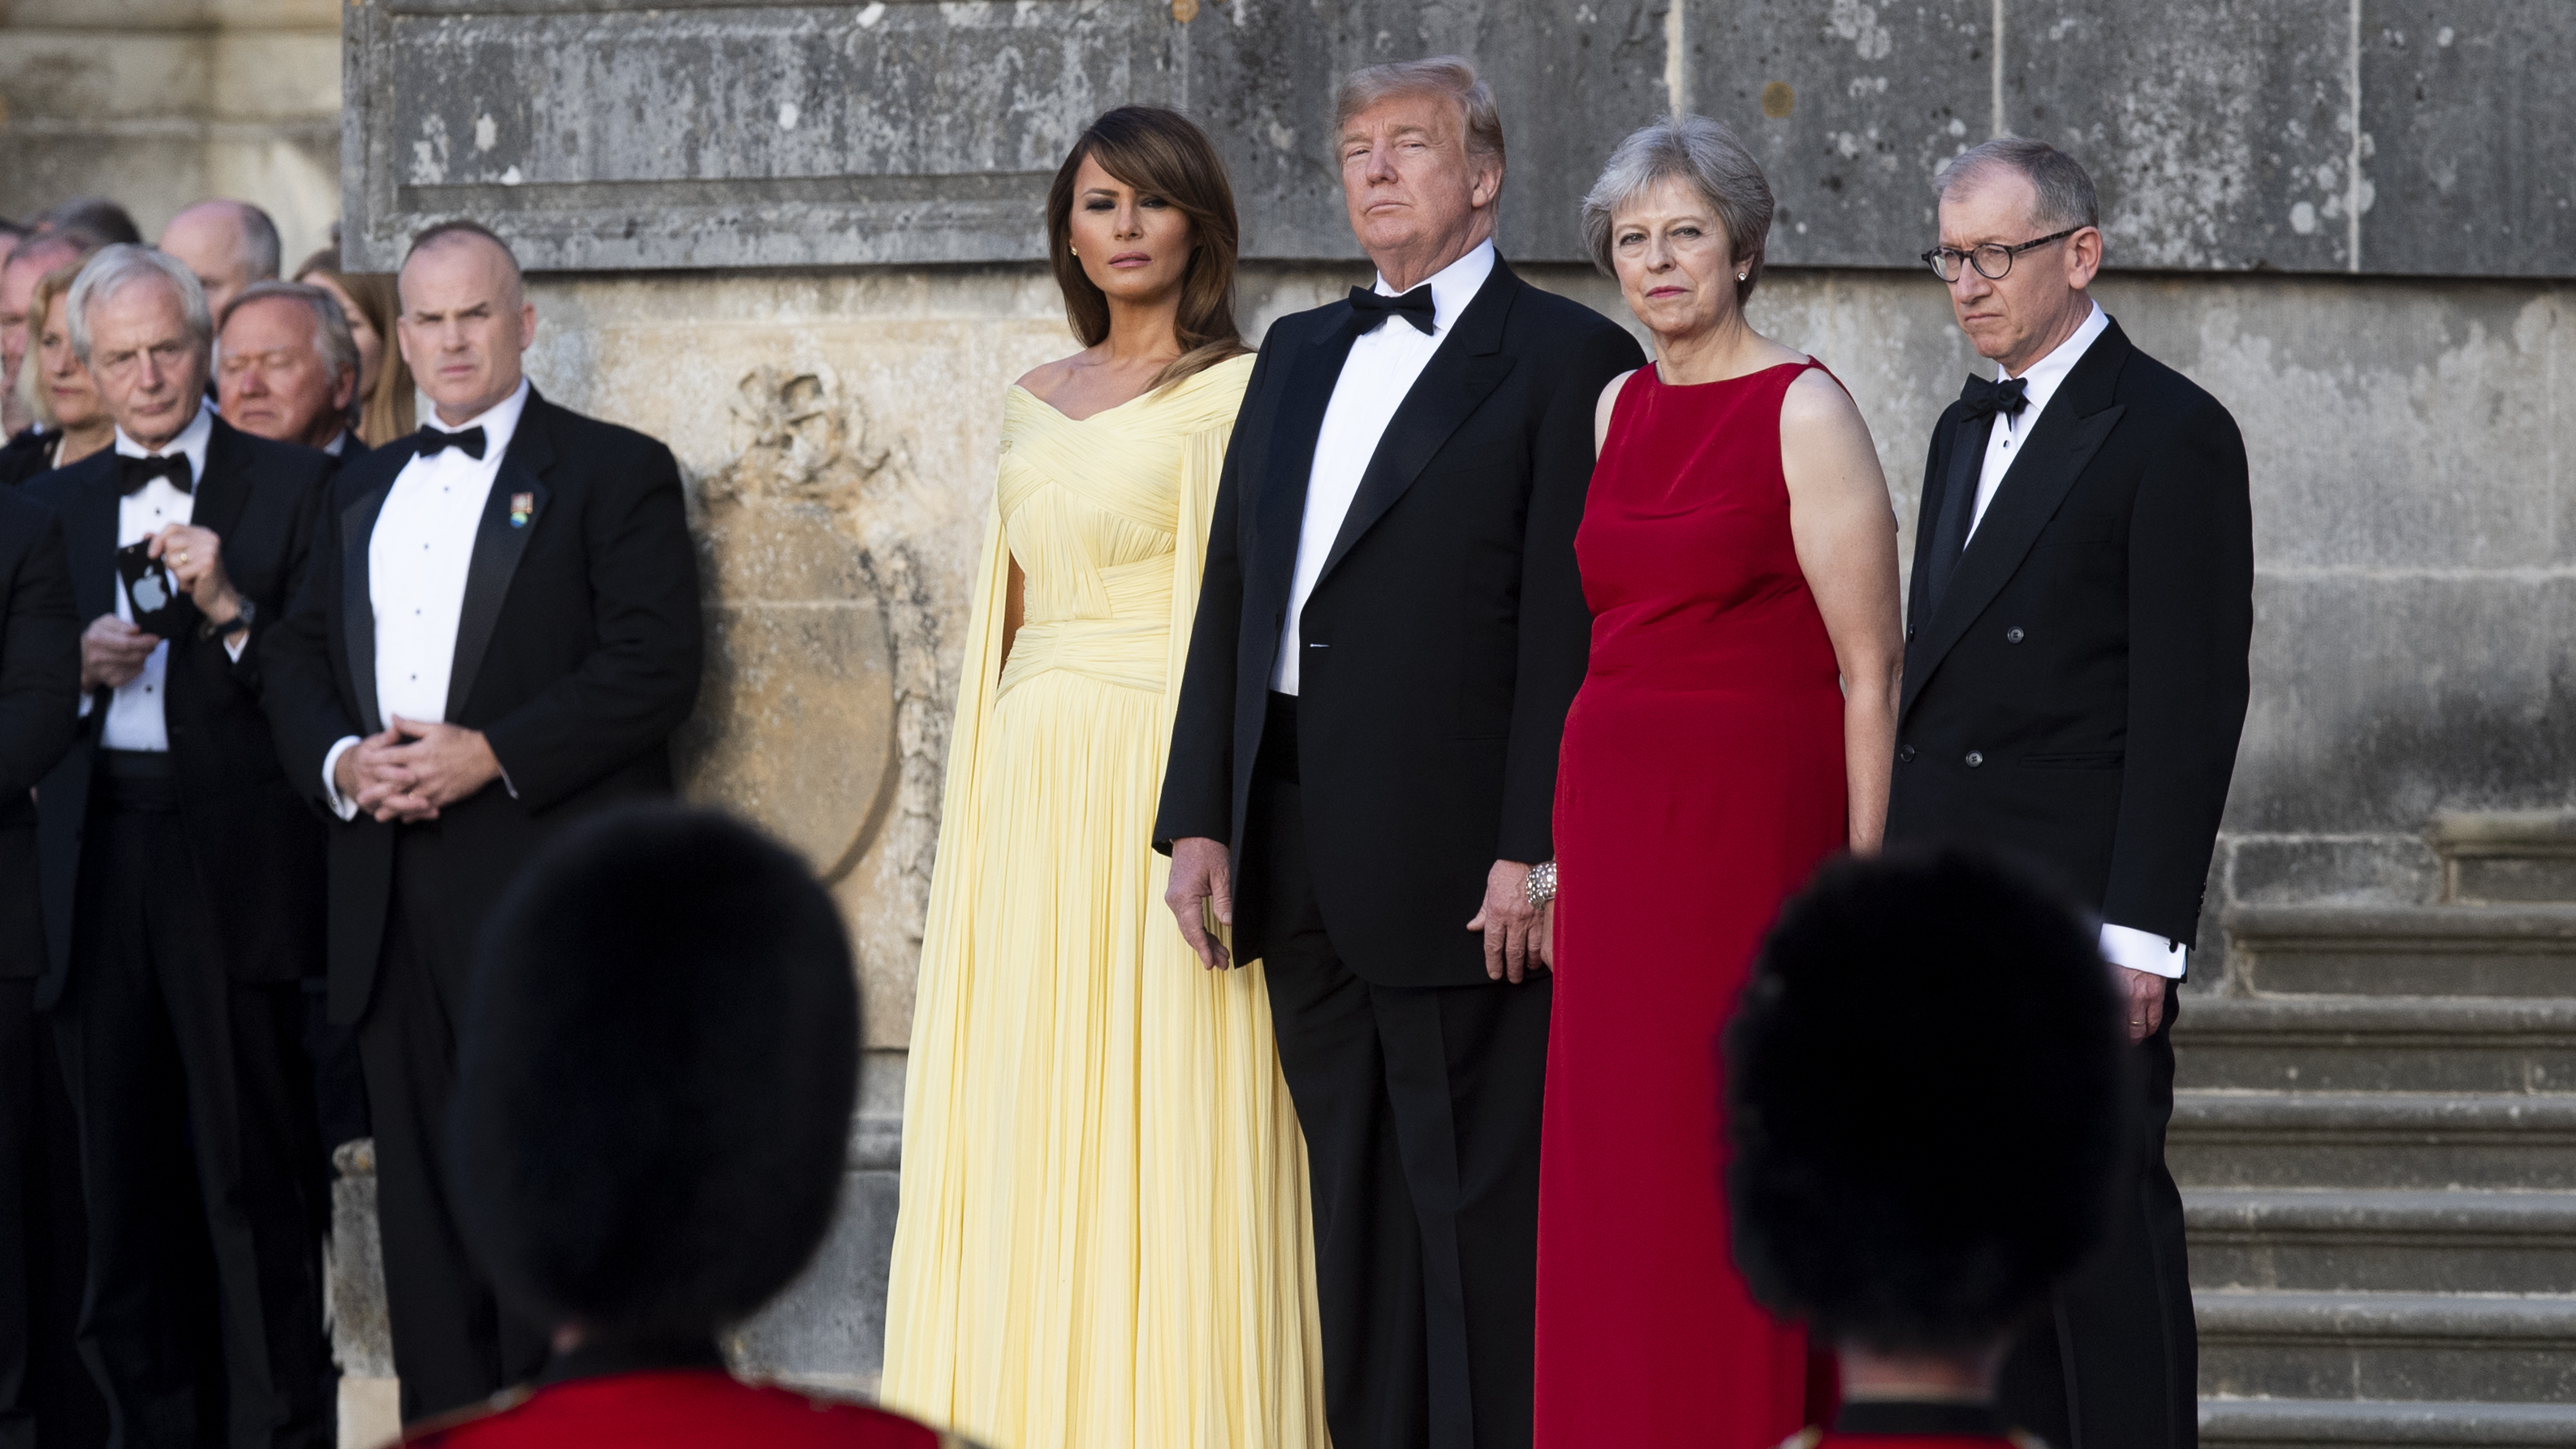 U.S. First Lady Melania Trump, President Trump, British Prime Minister Theresa May and her husband Philip May watch a live military performance by the bands of the Scots, Irish and Welsh Guards ahead of a dinner at Blenheim Palace, in Oxfordshire, U.K., on Thursday.